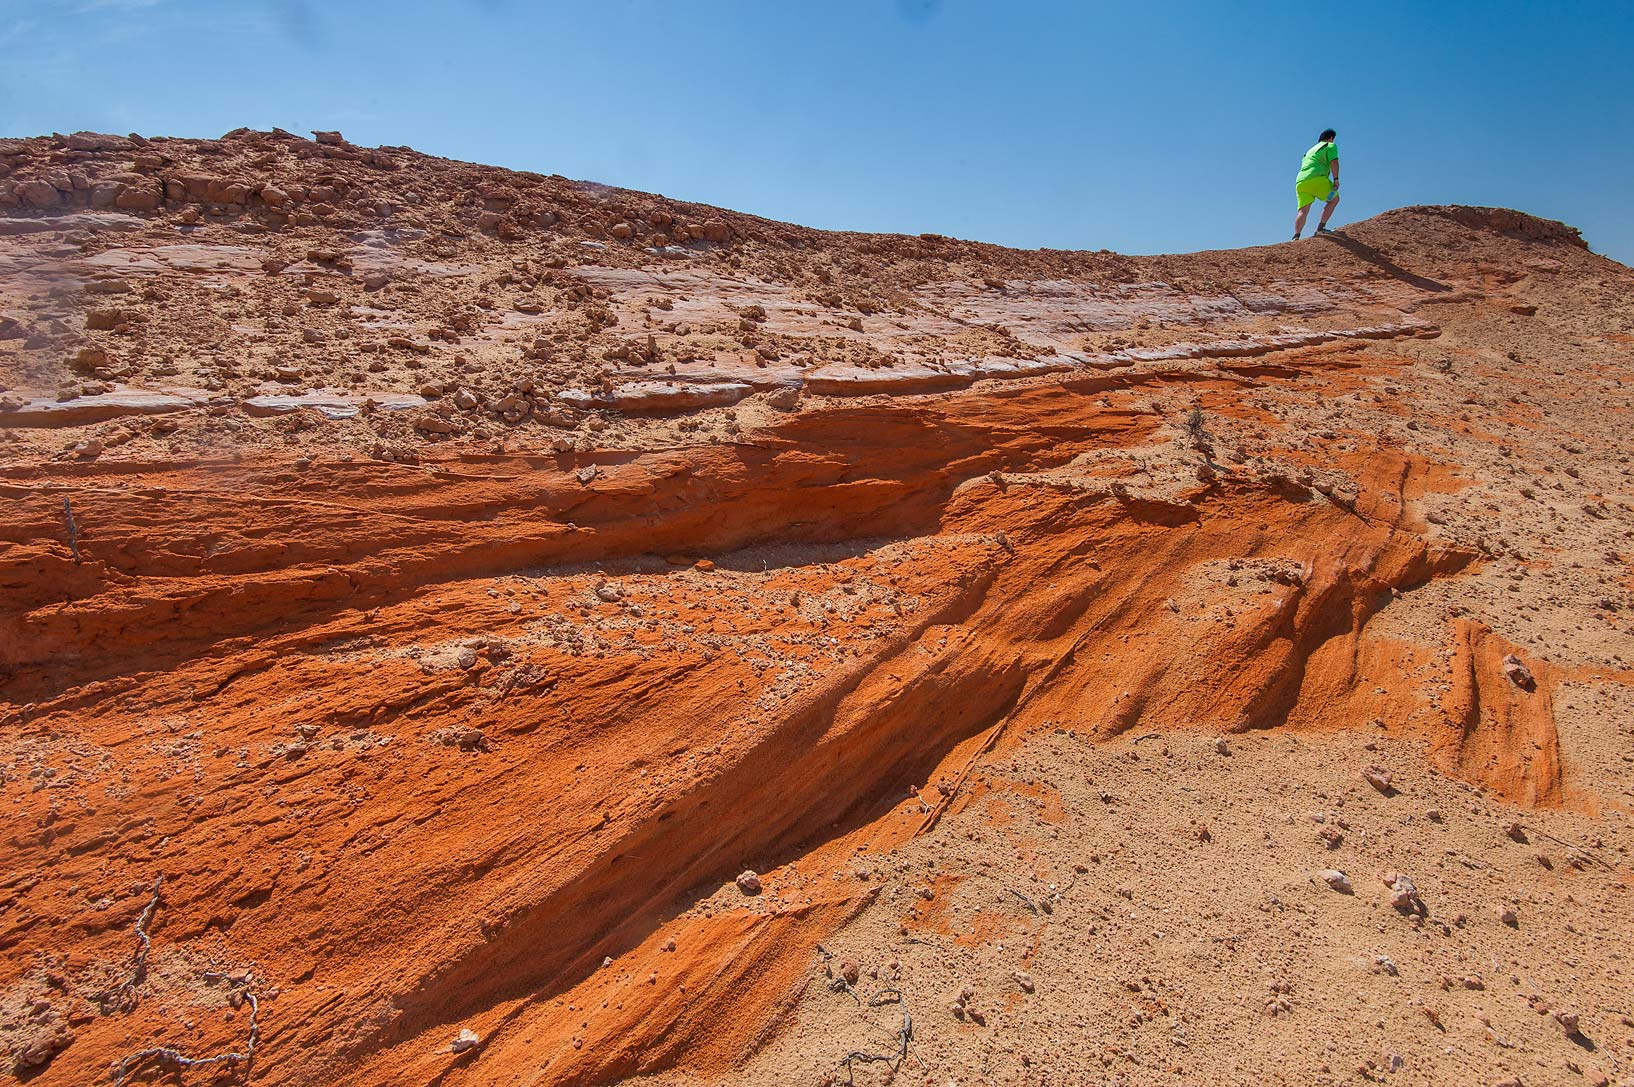 Climbing an orange lithified (hardened) sand dune...Jebel Al-Nakhsh in south-western Qatar